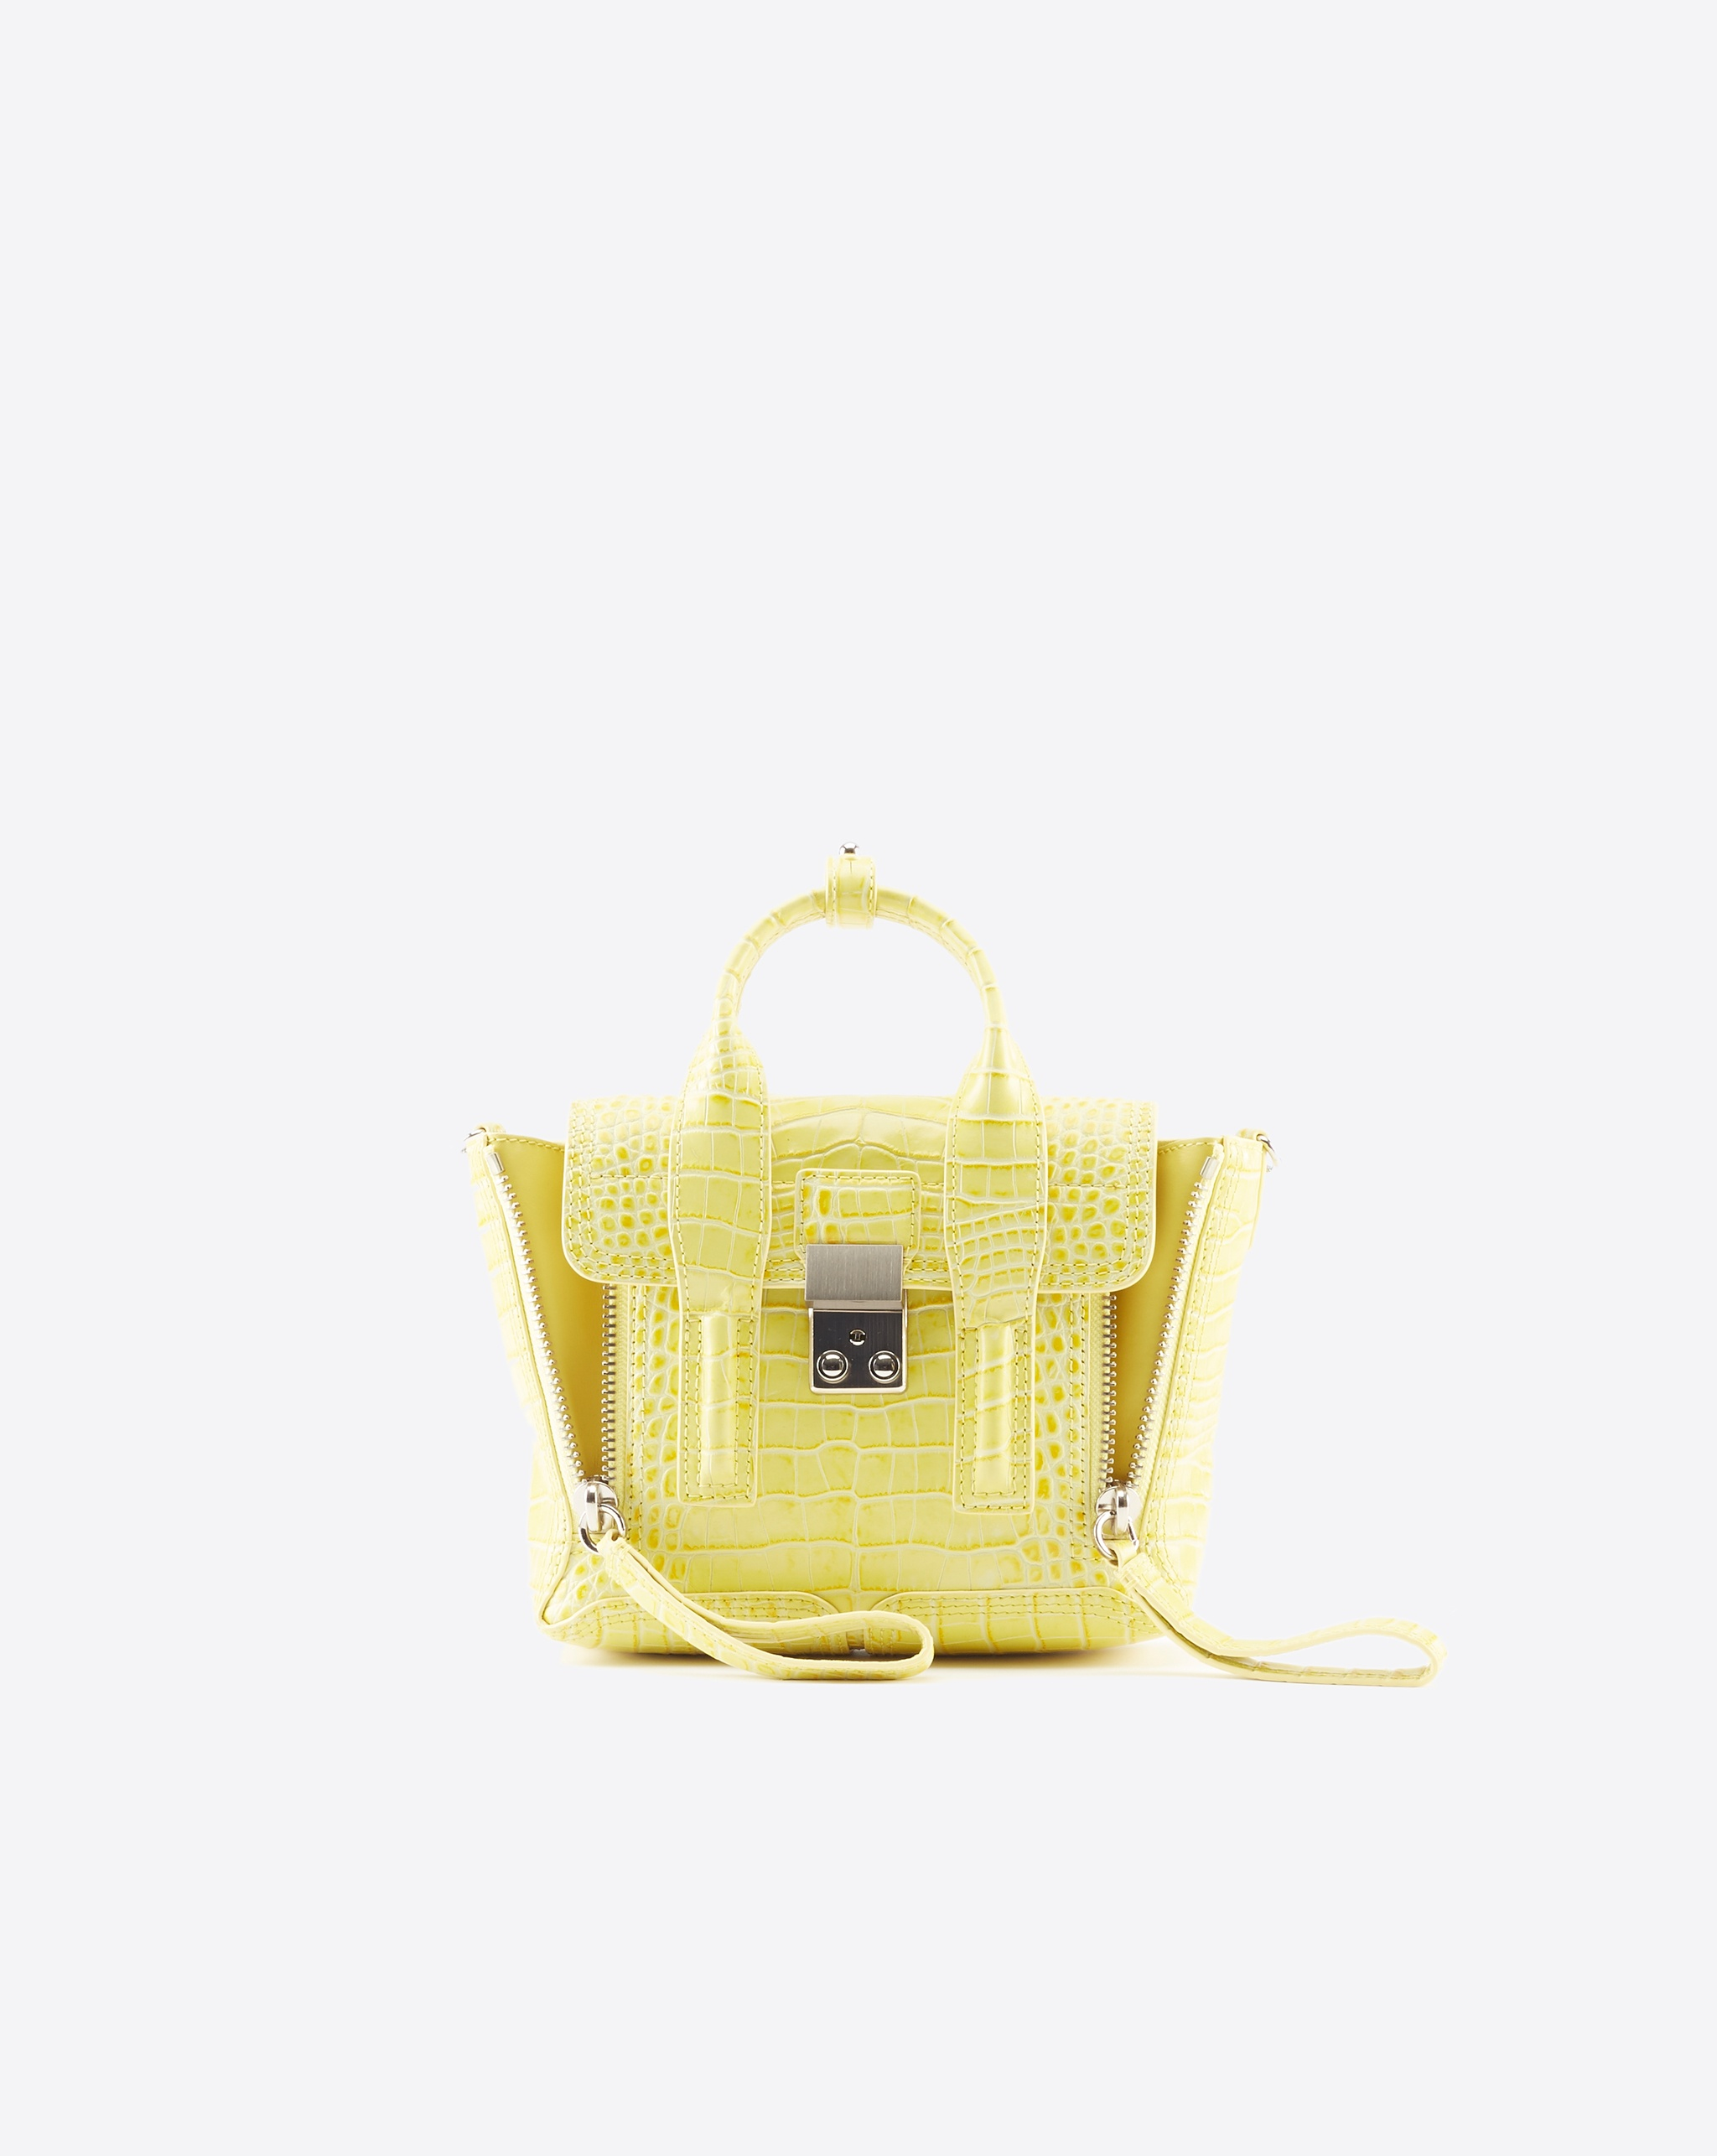 3-1-phillip-lim-pashli-mini-satchel_14682631_25013904_2048